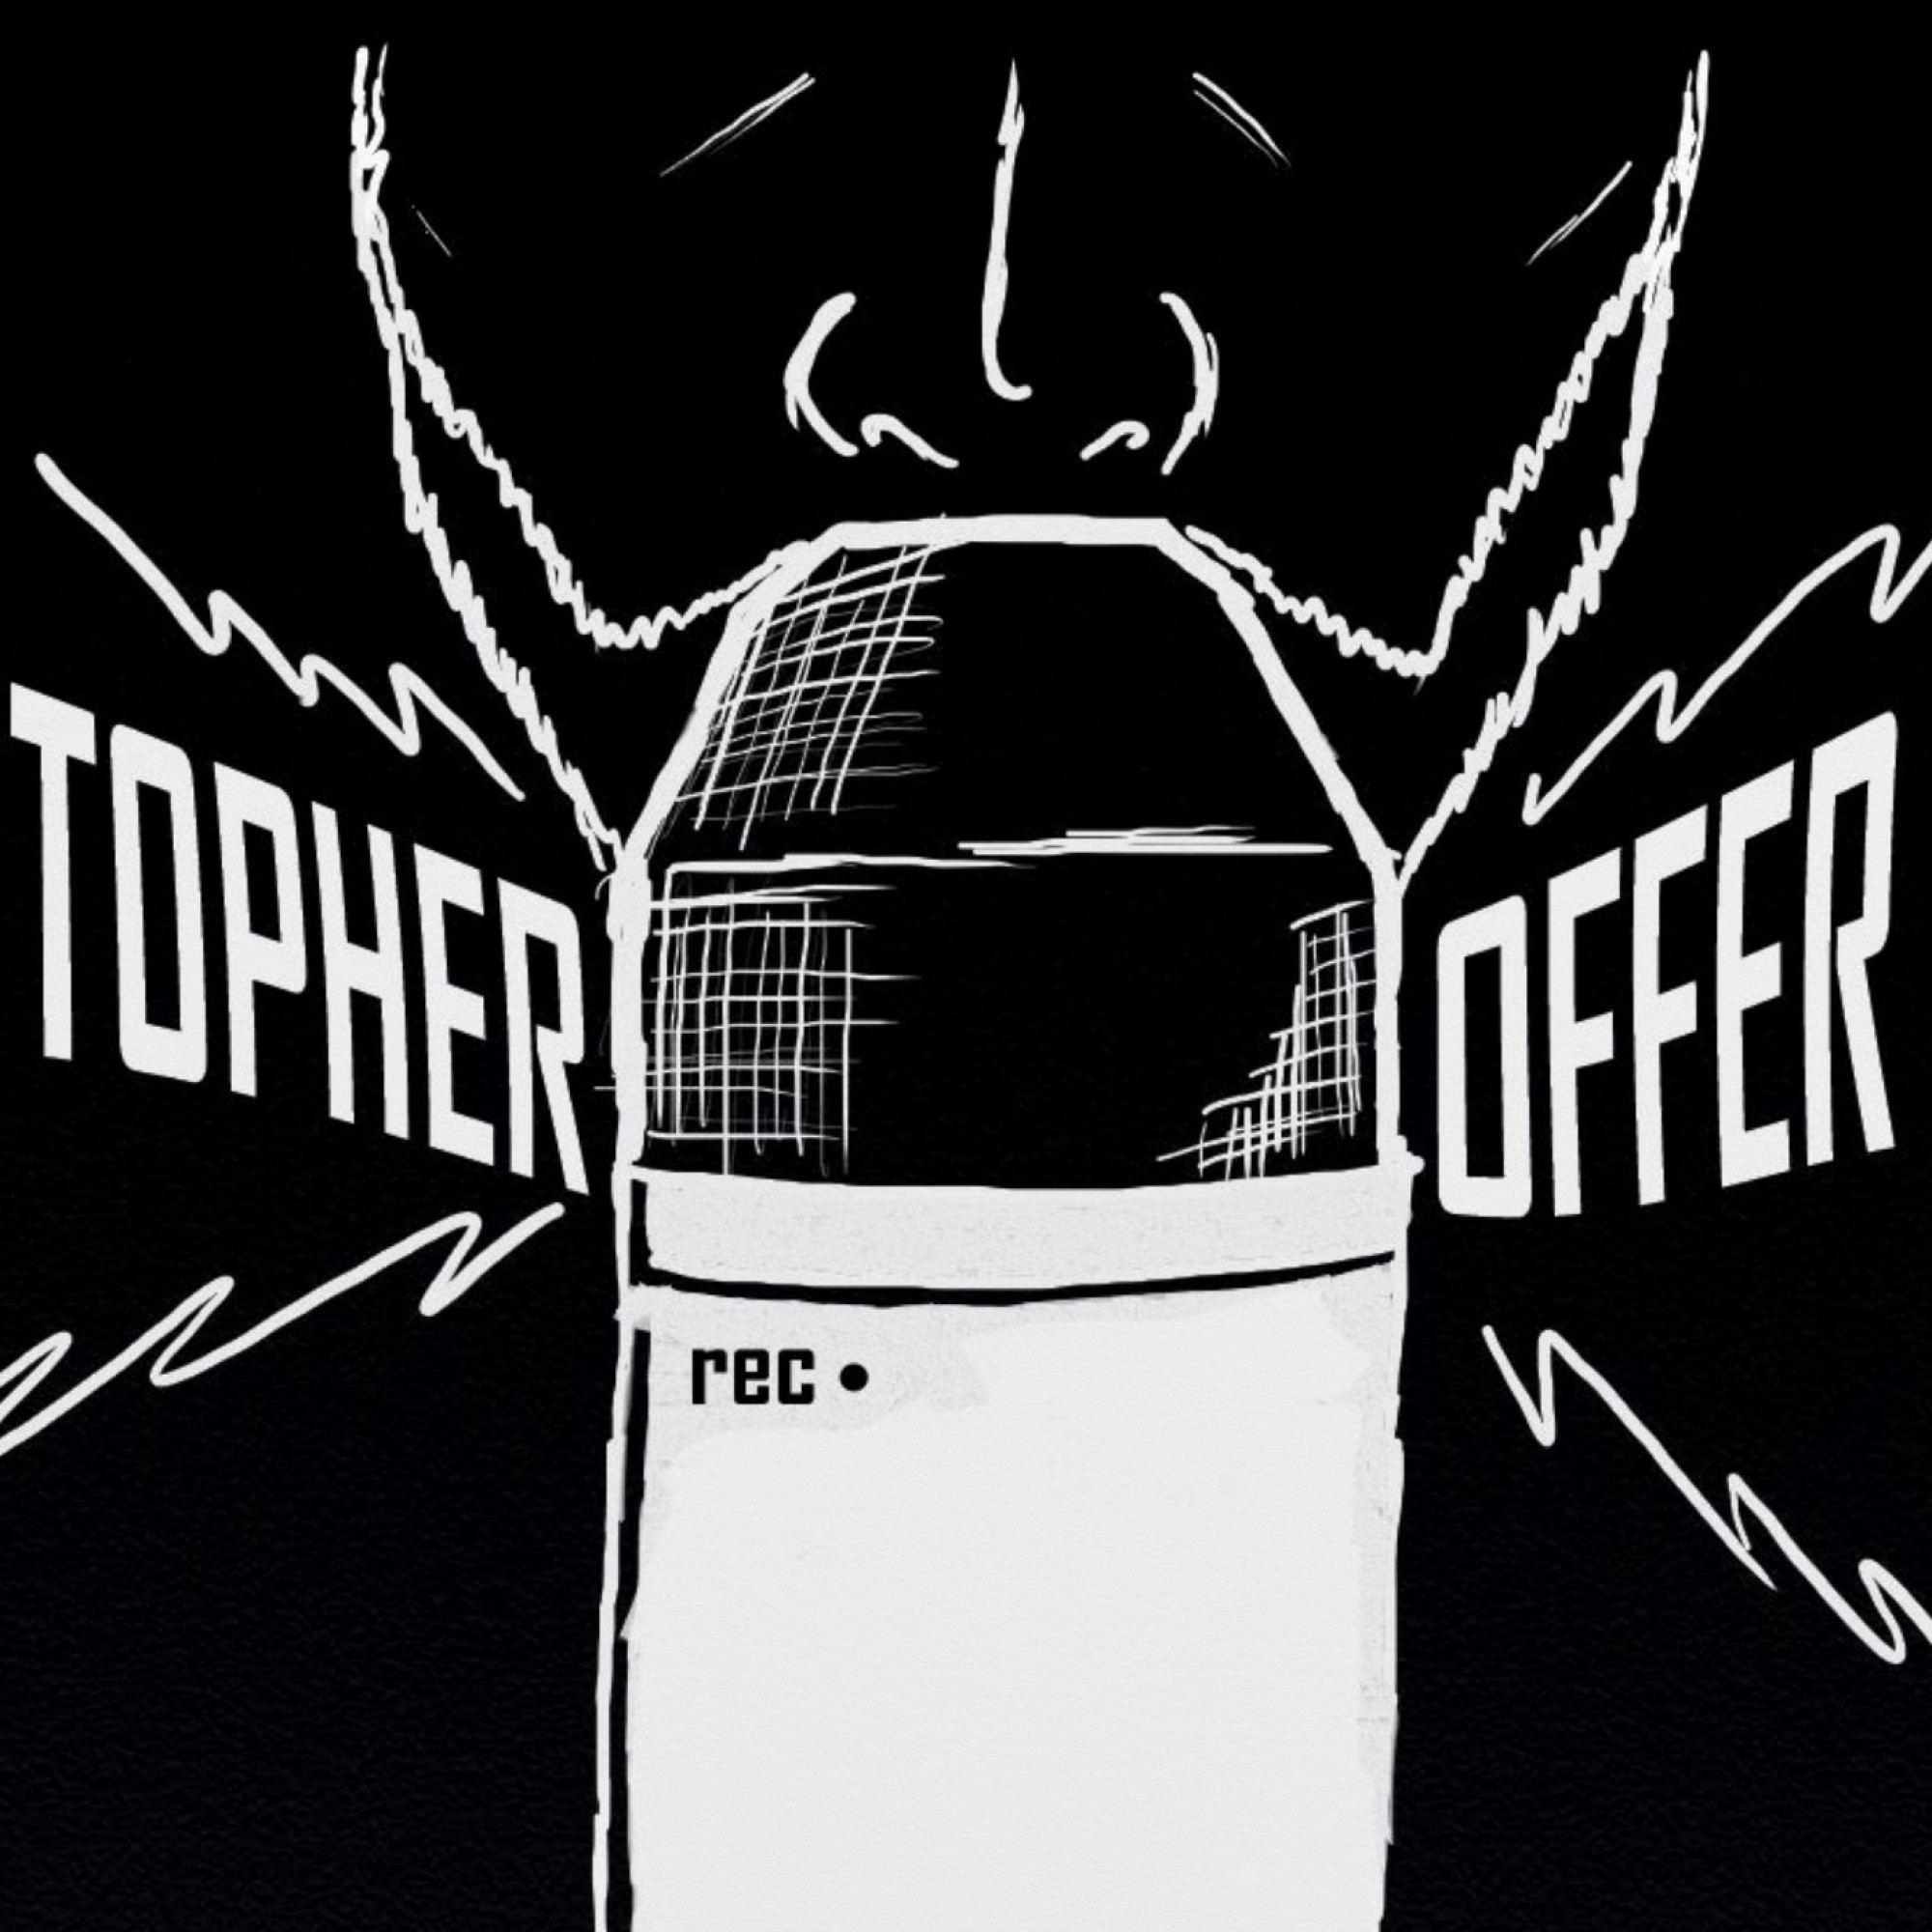 The topher offer